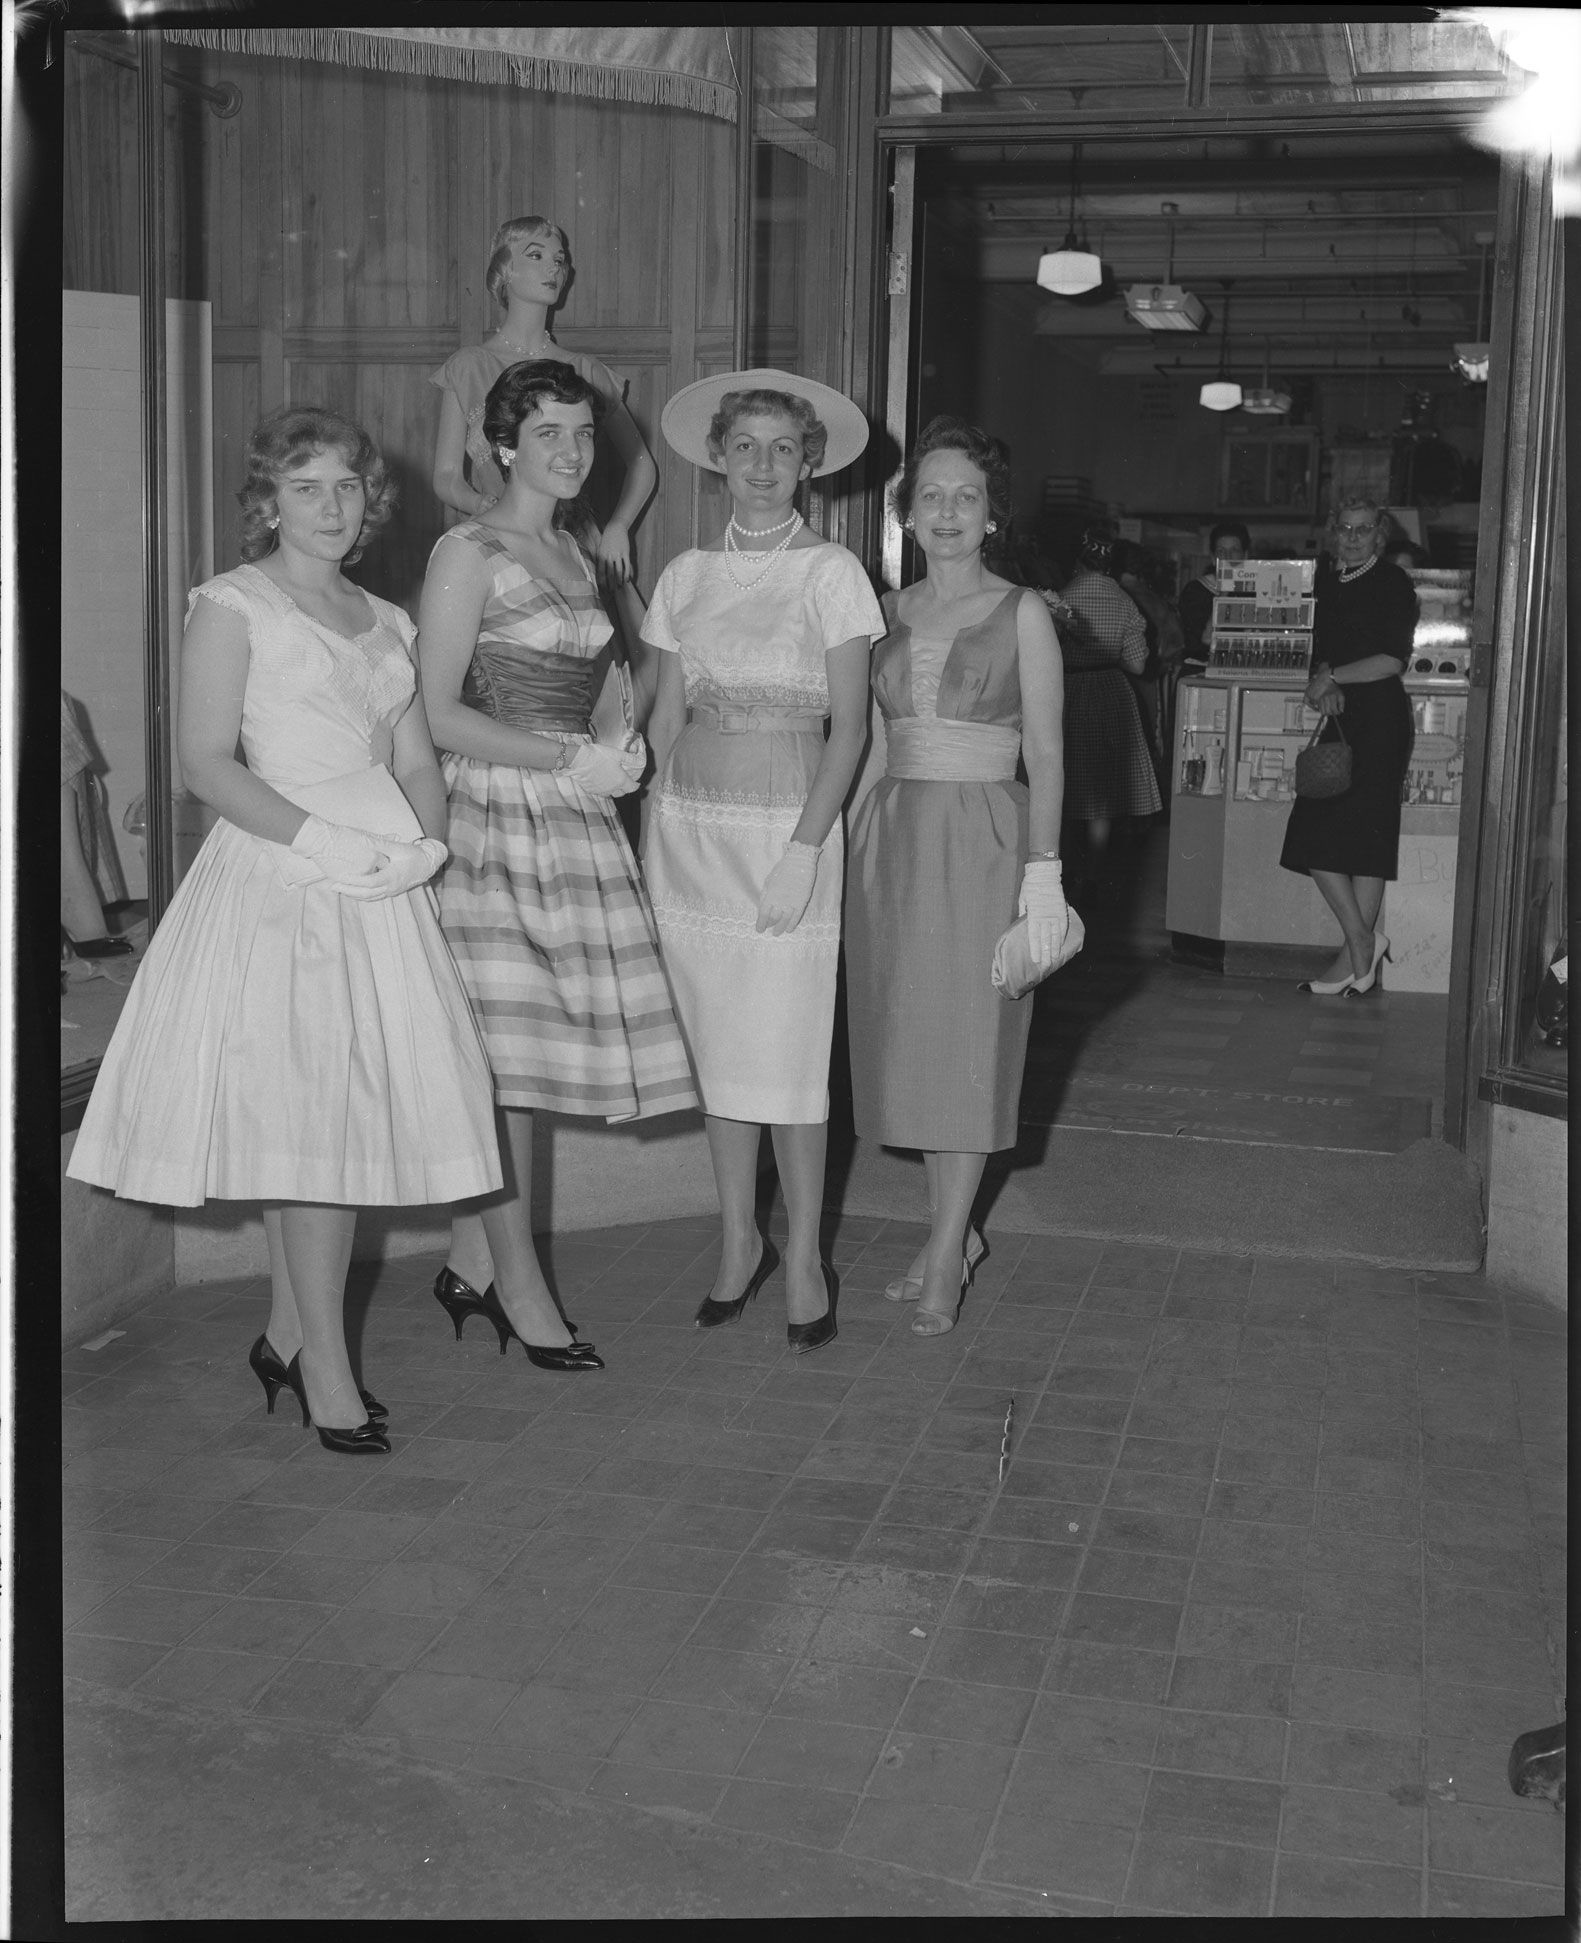 Fashion models at Schein's Department Store